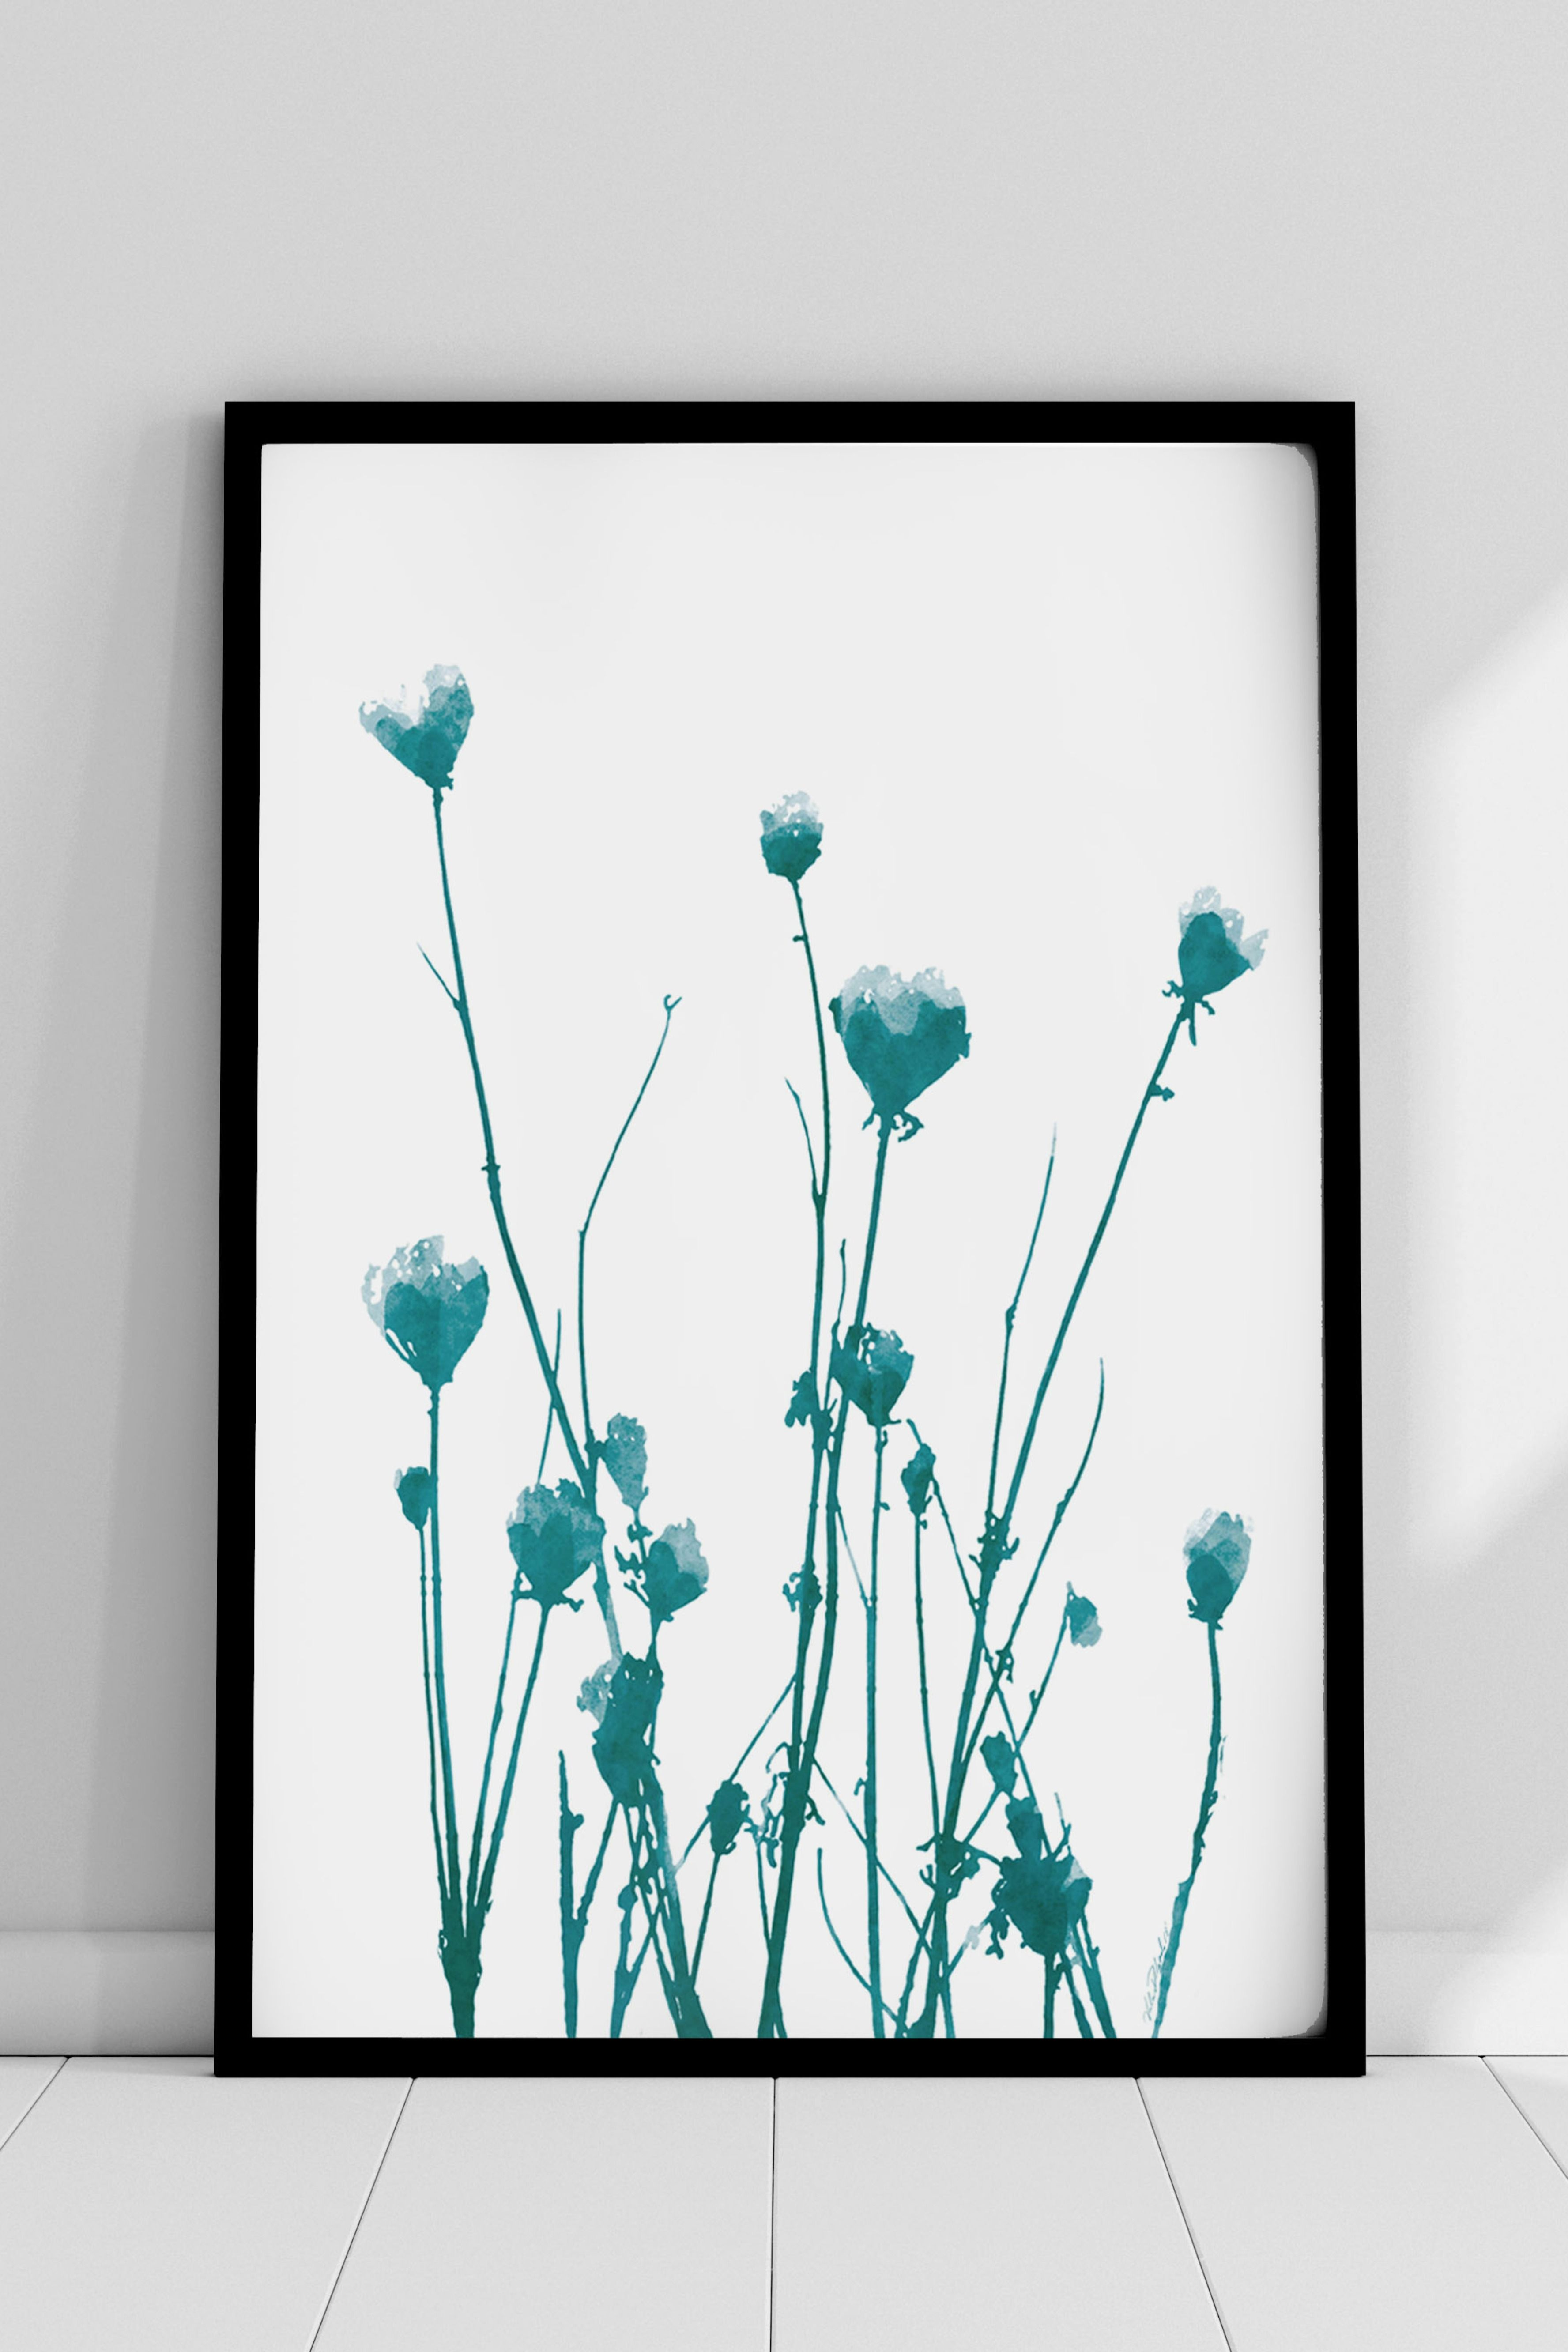 Turquoise Floral Wall Art Botanical Teal Flower Watercolor Etsy Etsy Wall Art Floral Wall Art Green Wall Art Print